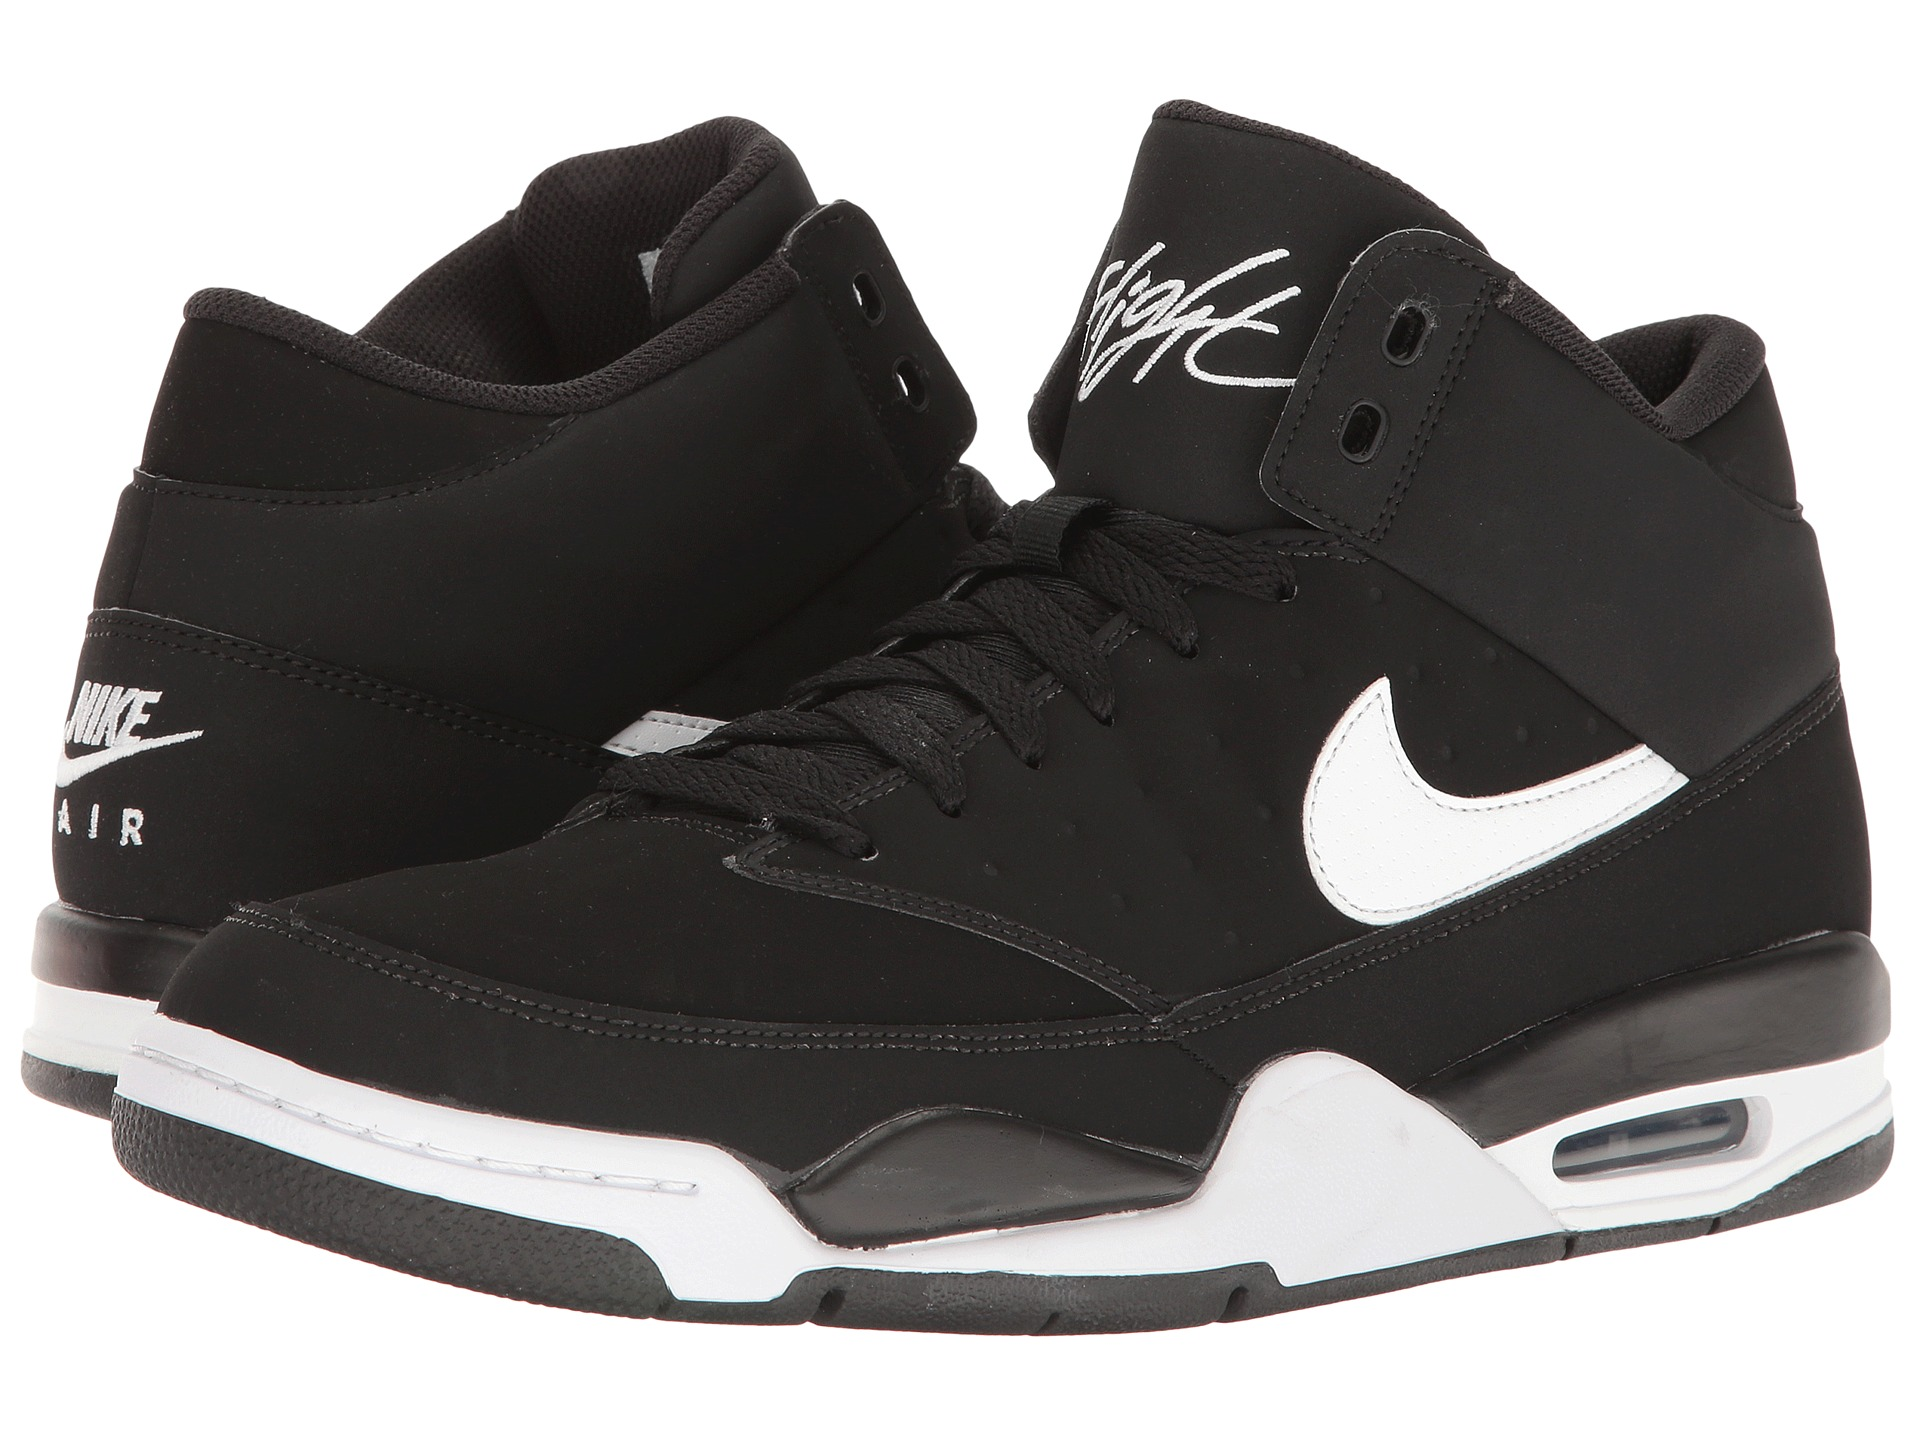 Nike Air Flight Classic Shoes